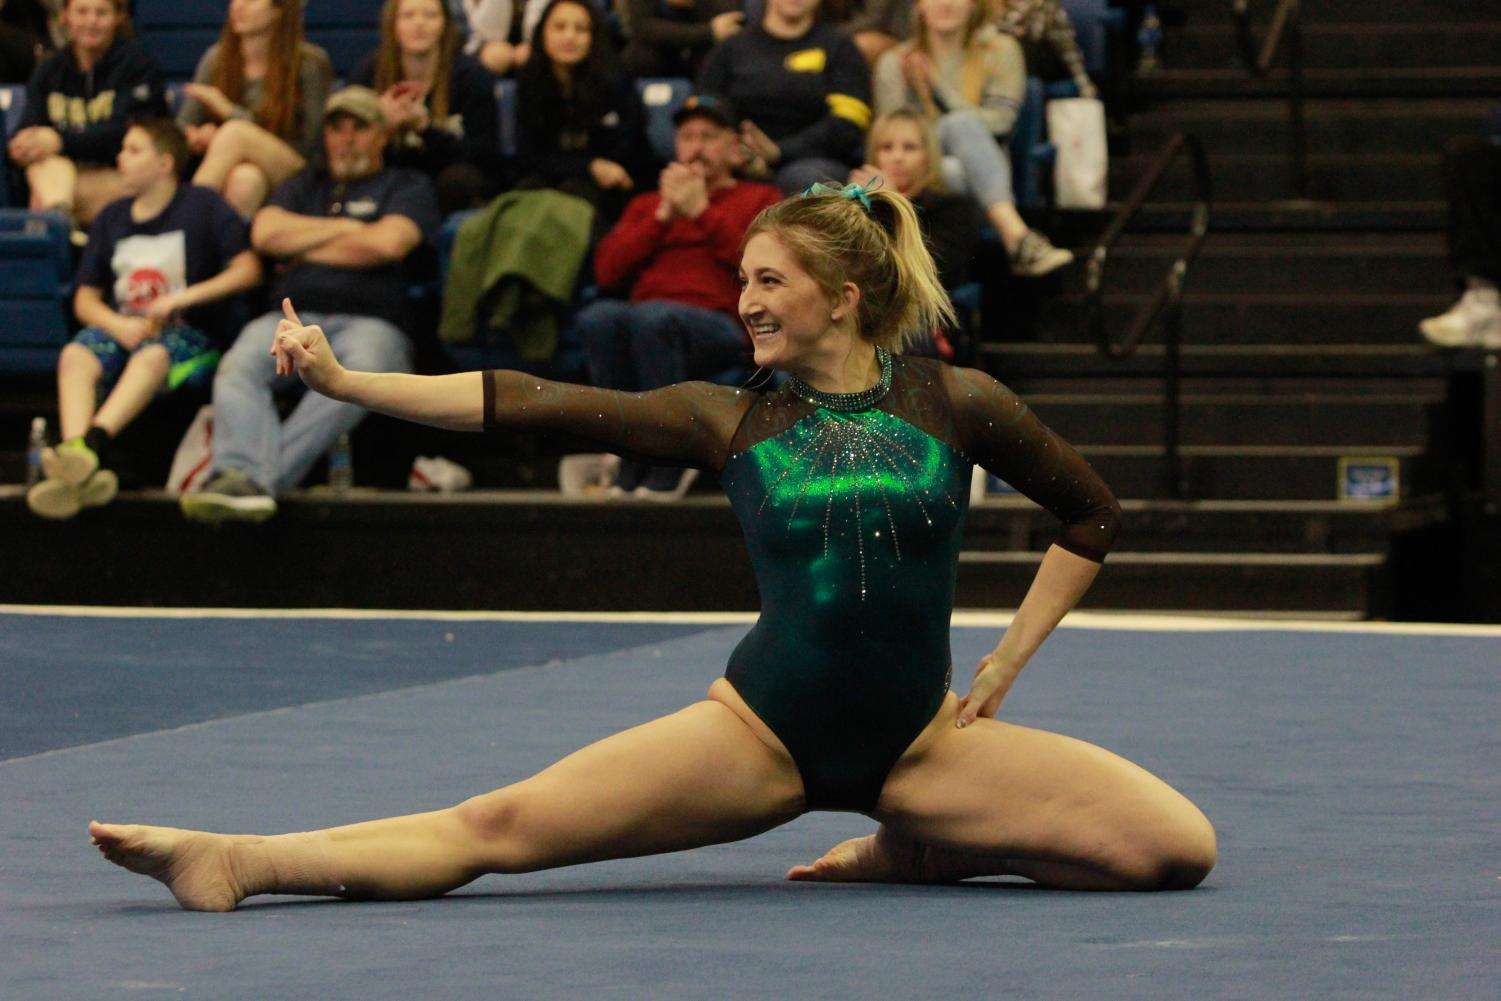 Sacramento State senior gymnast Caitlin Soliwoda finishes her floor routine Friday, Feb. 9 at UC Davis. Soliwoda recorded a 9.725 in the event and a 39.125 as an all-arounder.